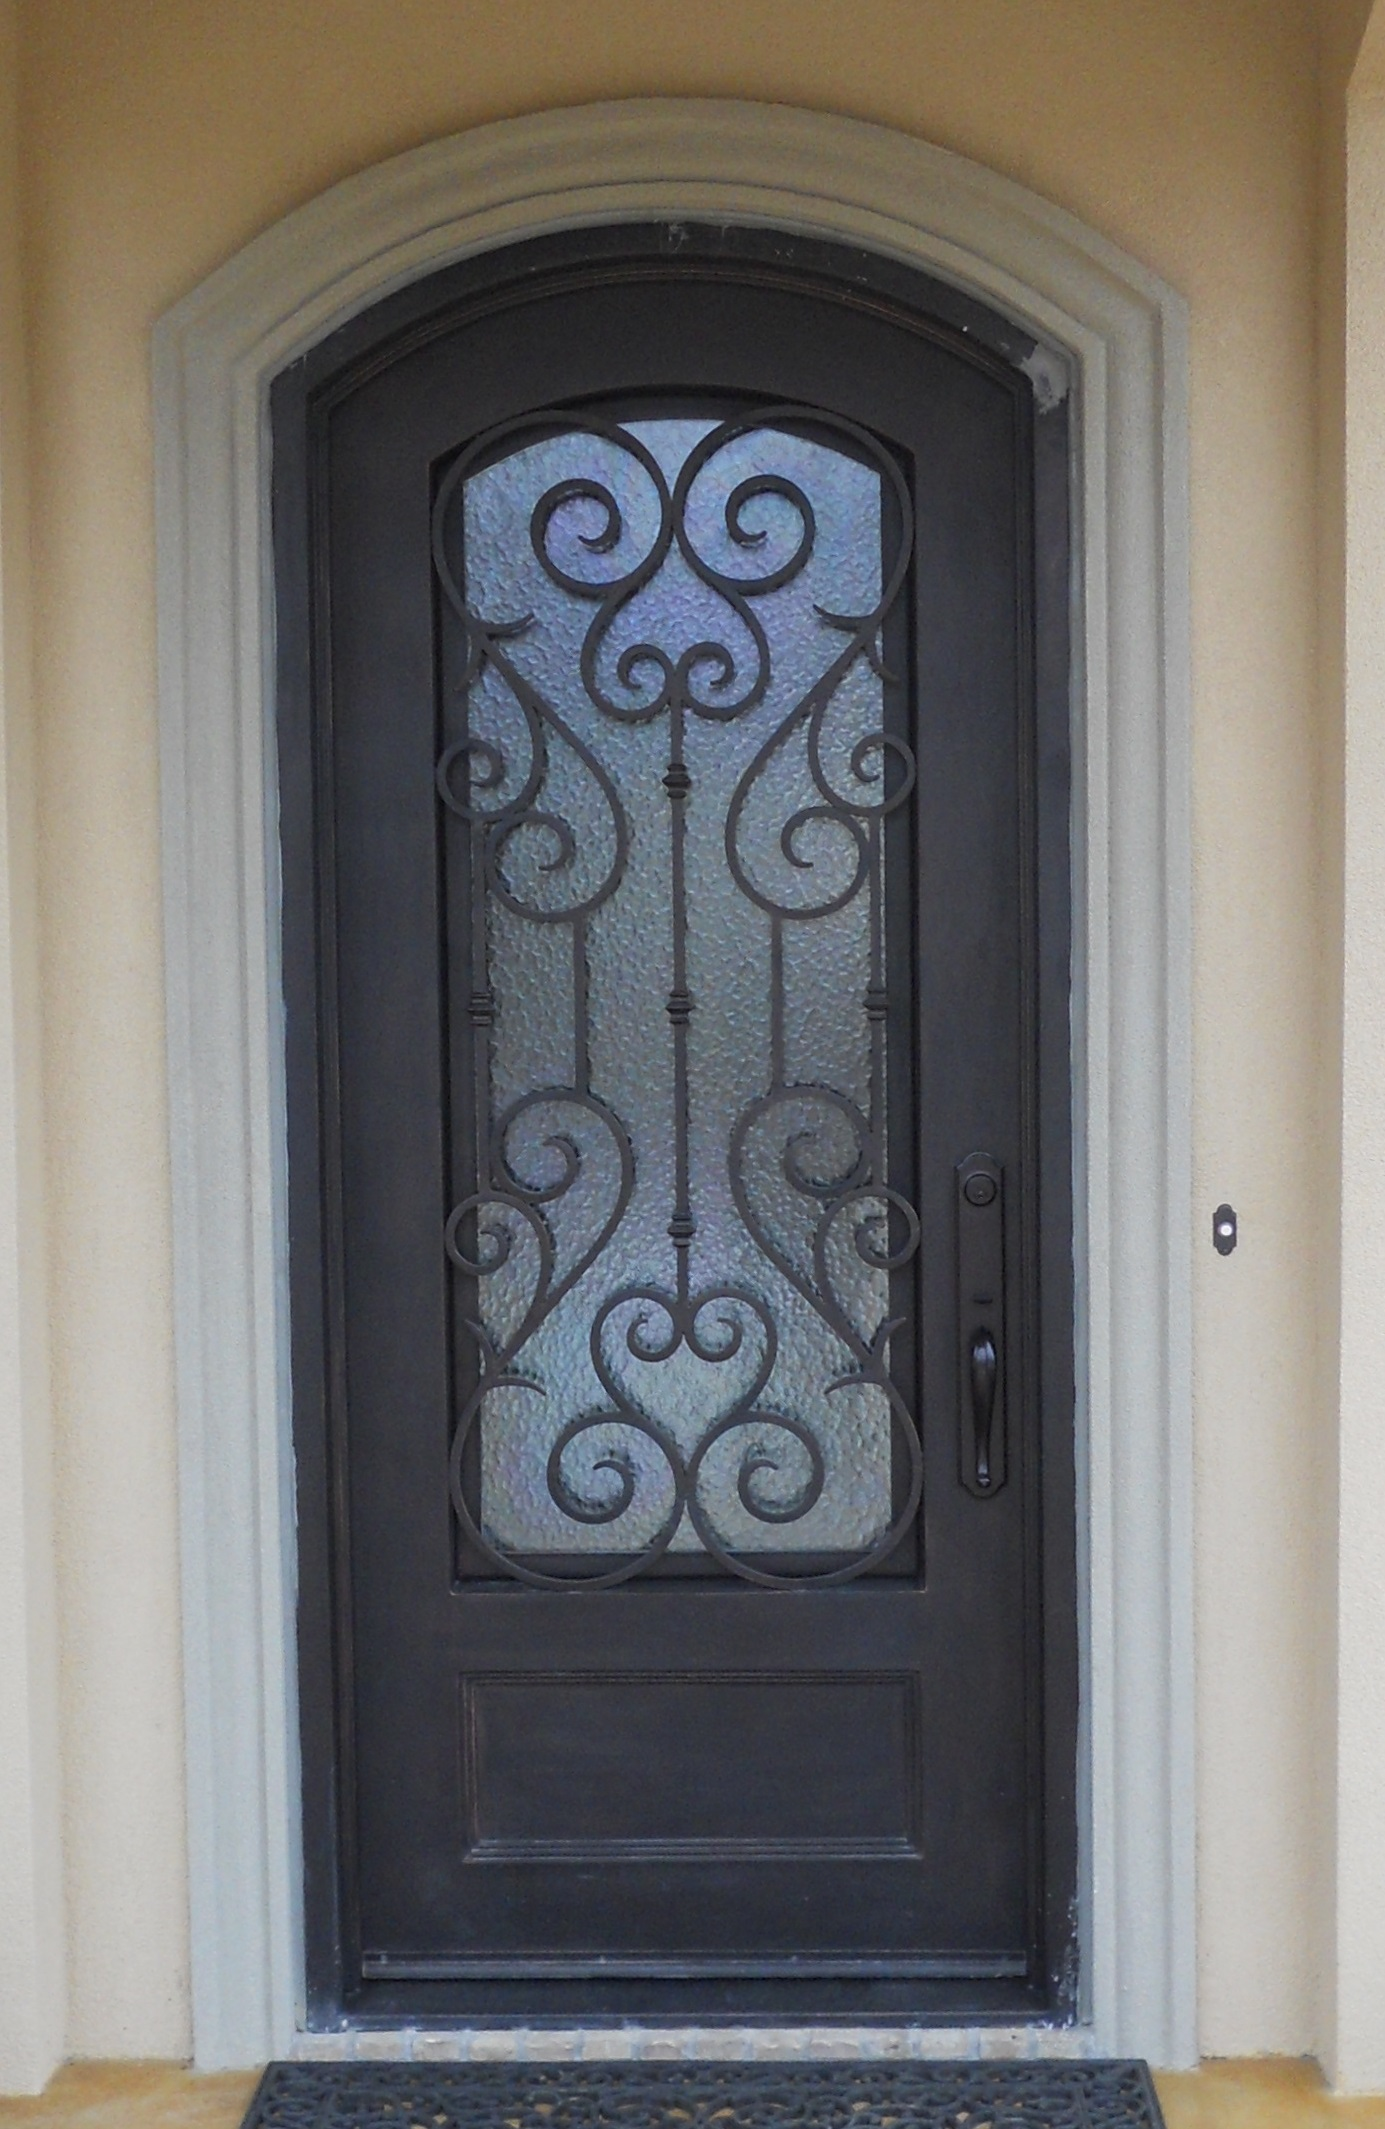 32-saunders-42-x-96 & In-Stock Iron Doors l Iron Doors Plus l Handcrafted Iron Doors